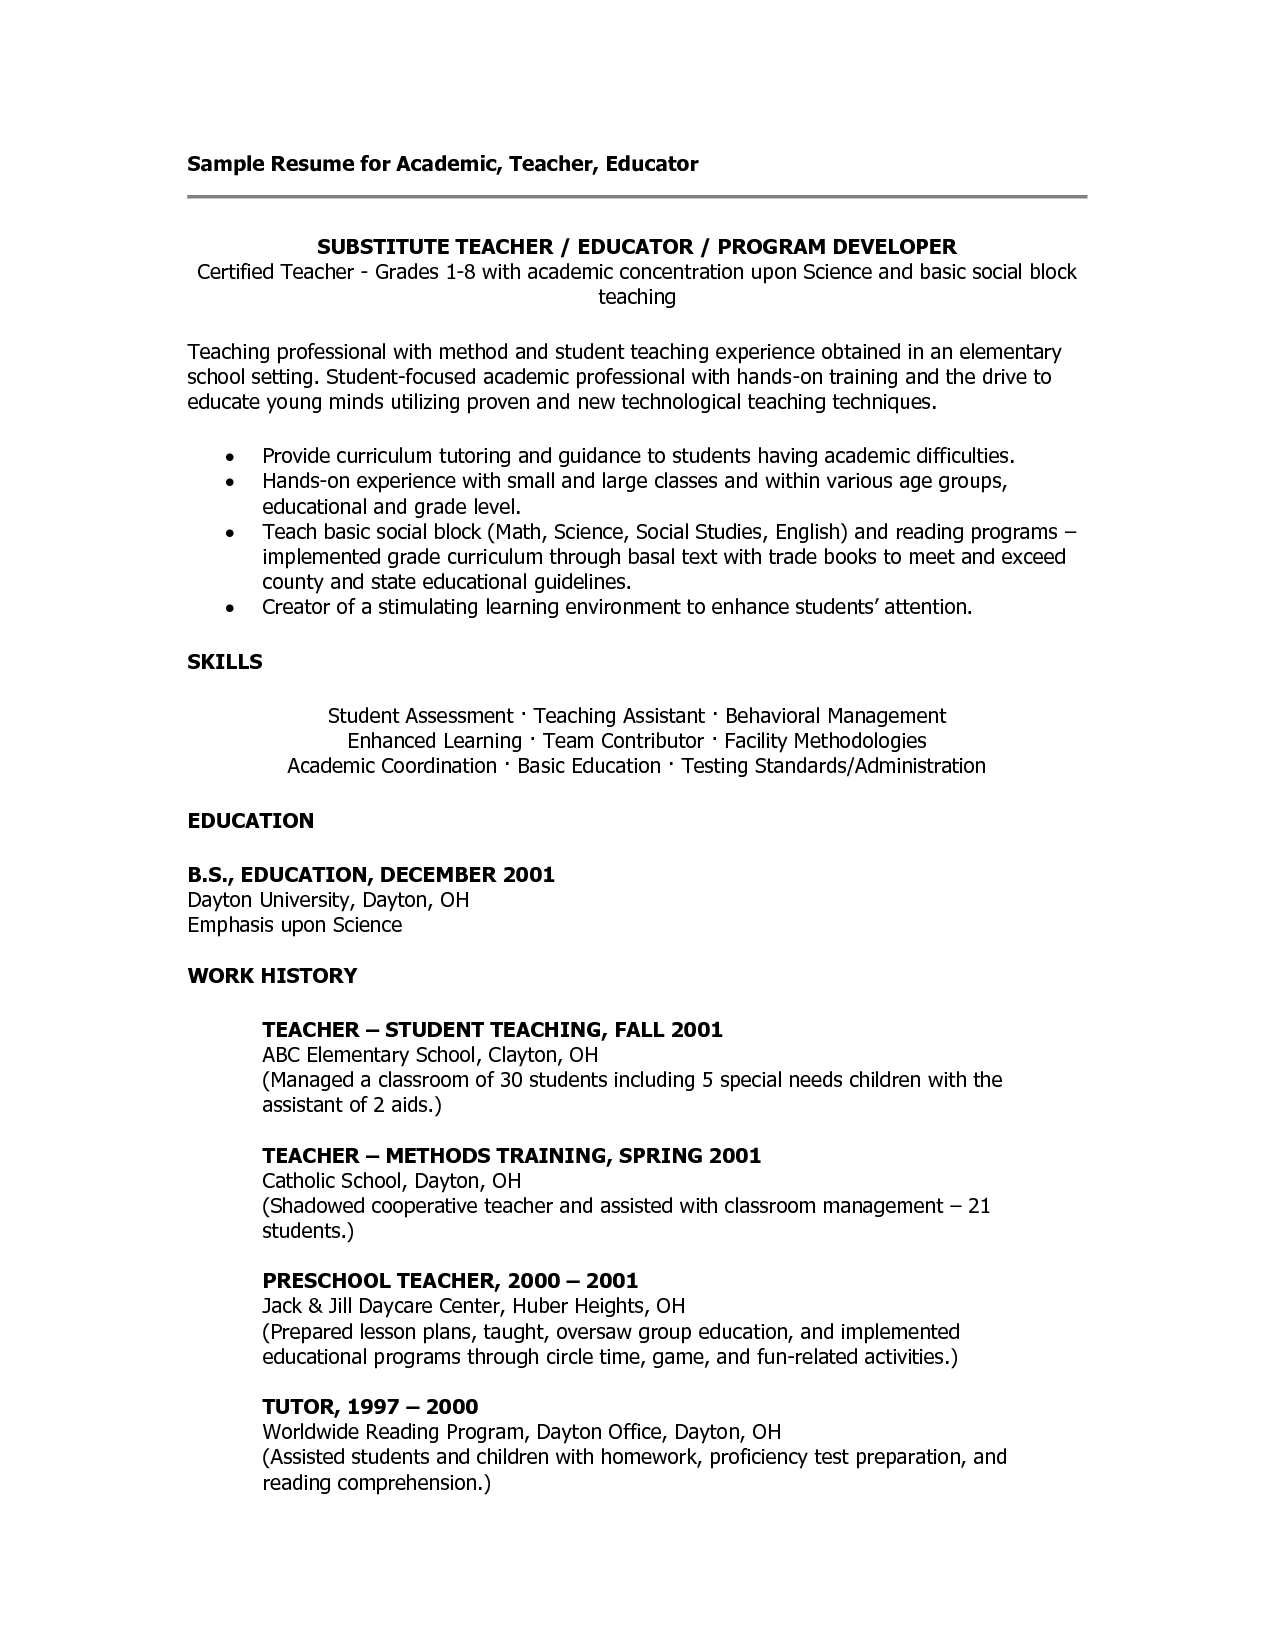 sample teacher resumes | Substitute Teacher Resume | FCS | Pinterest ...